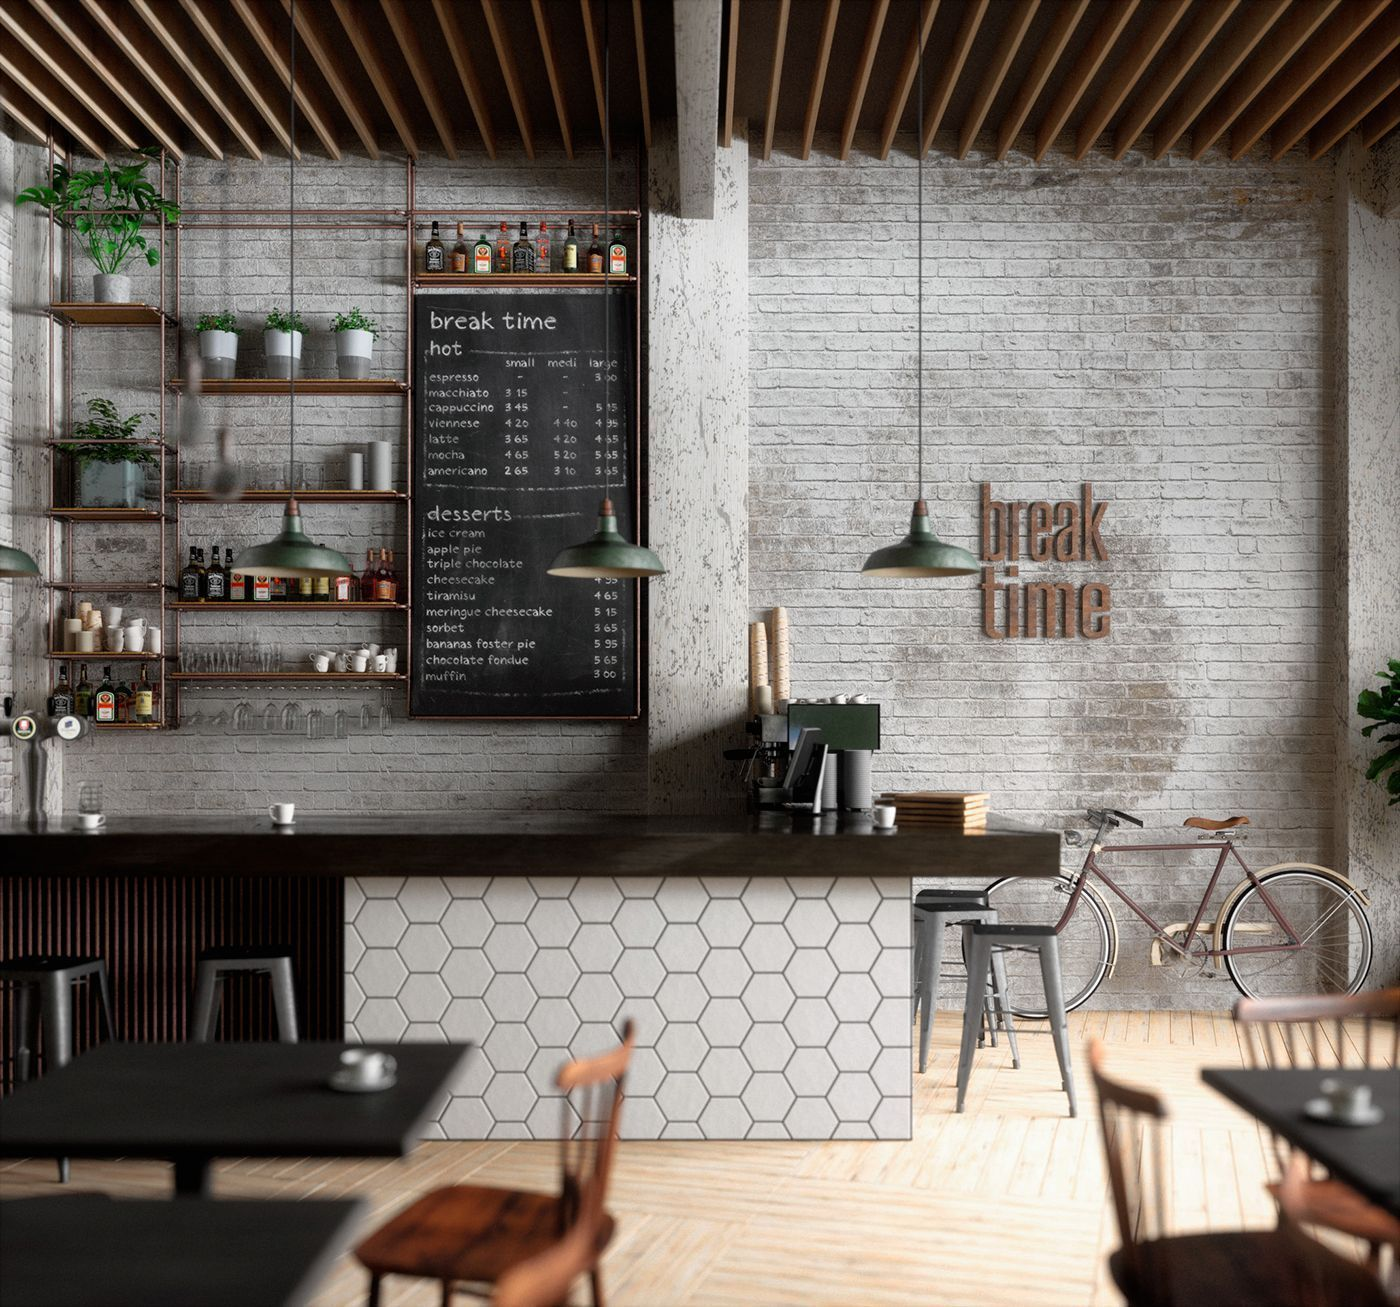 15 Simple Gorgeous Coffee Shop Ideas For Your Startup Business Decoratoo Coffee Shop Decor Cafe Interior Design Coffee Shop Interior Design